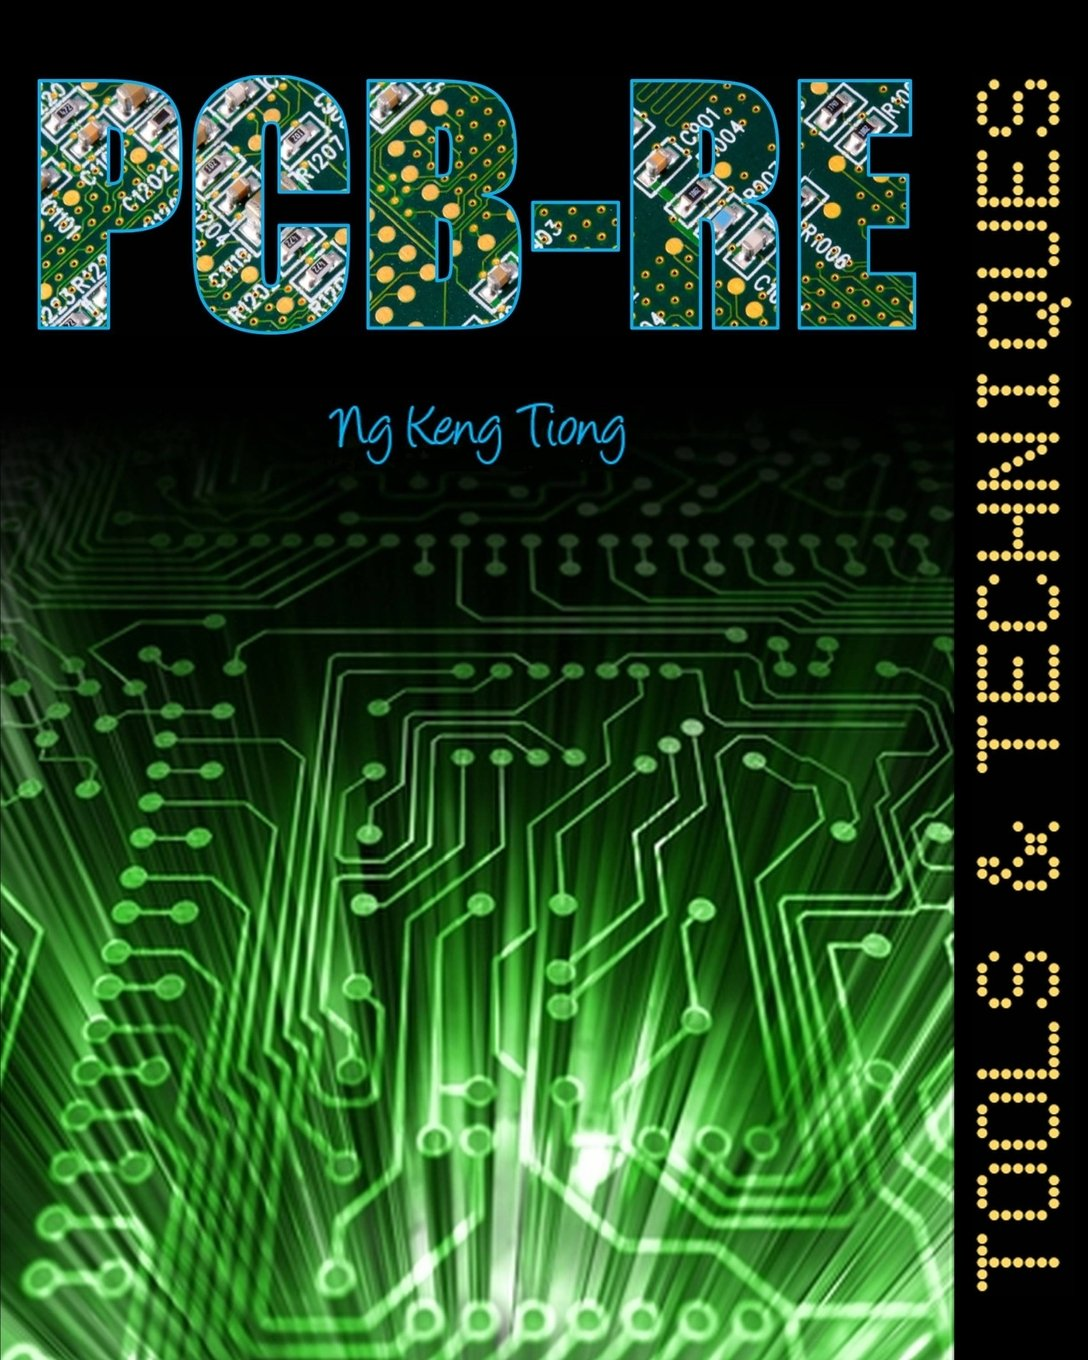 Pcb Re Tools Techniques Mr Keng Tiong Ng 9781979331388 Amazon Electronic Circuit Board Repair Field Service Books